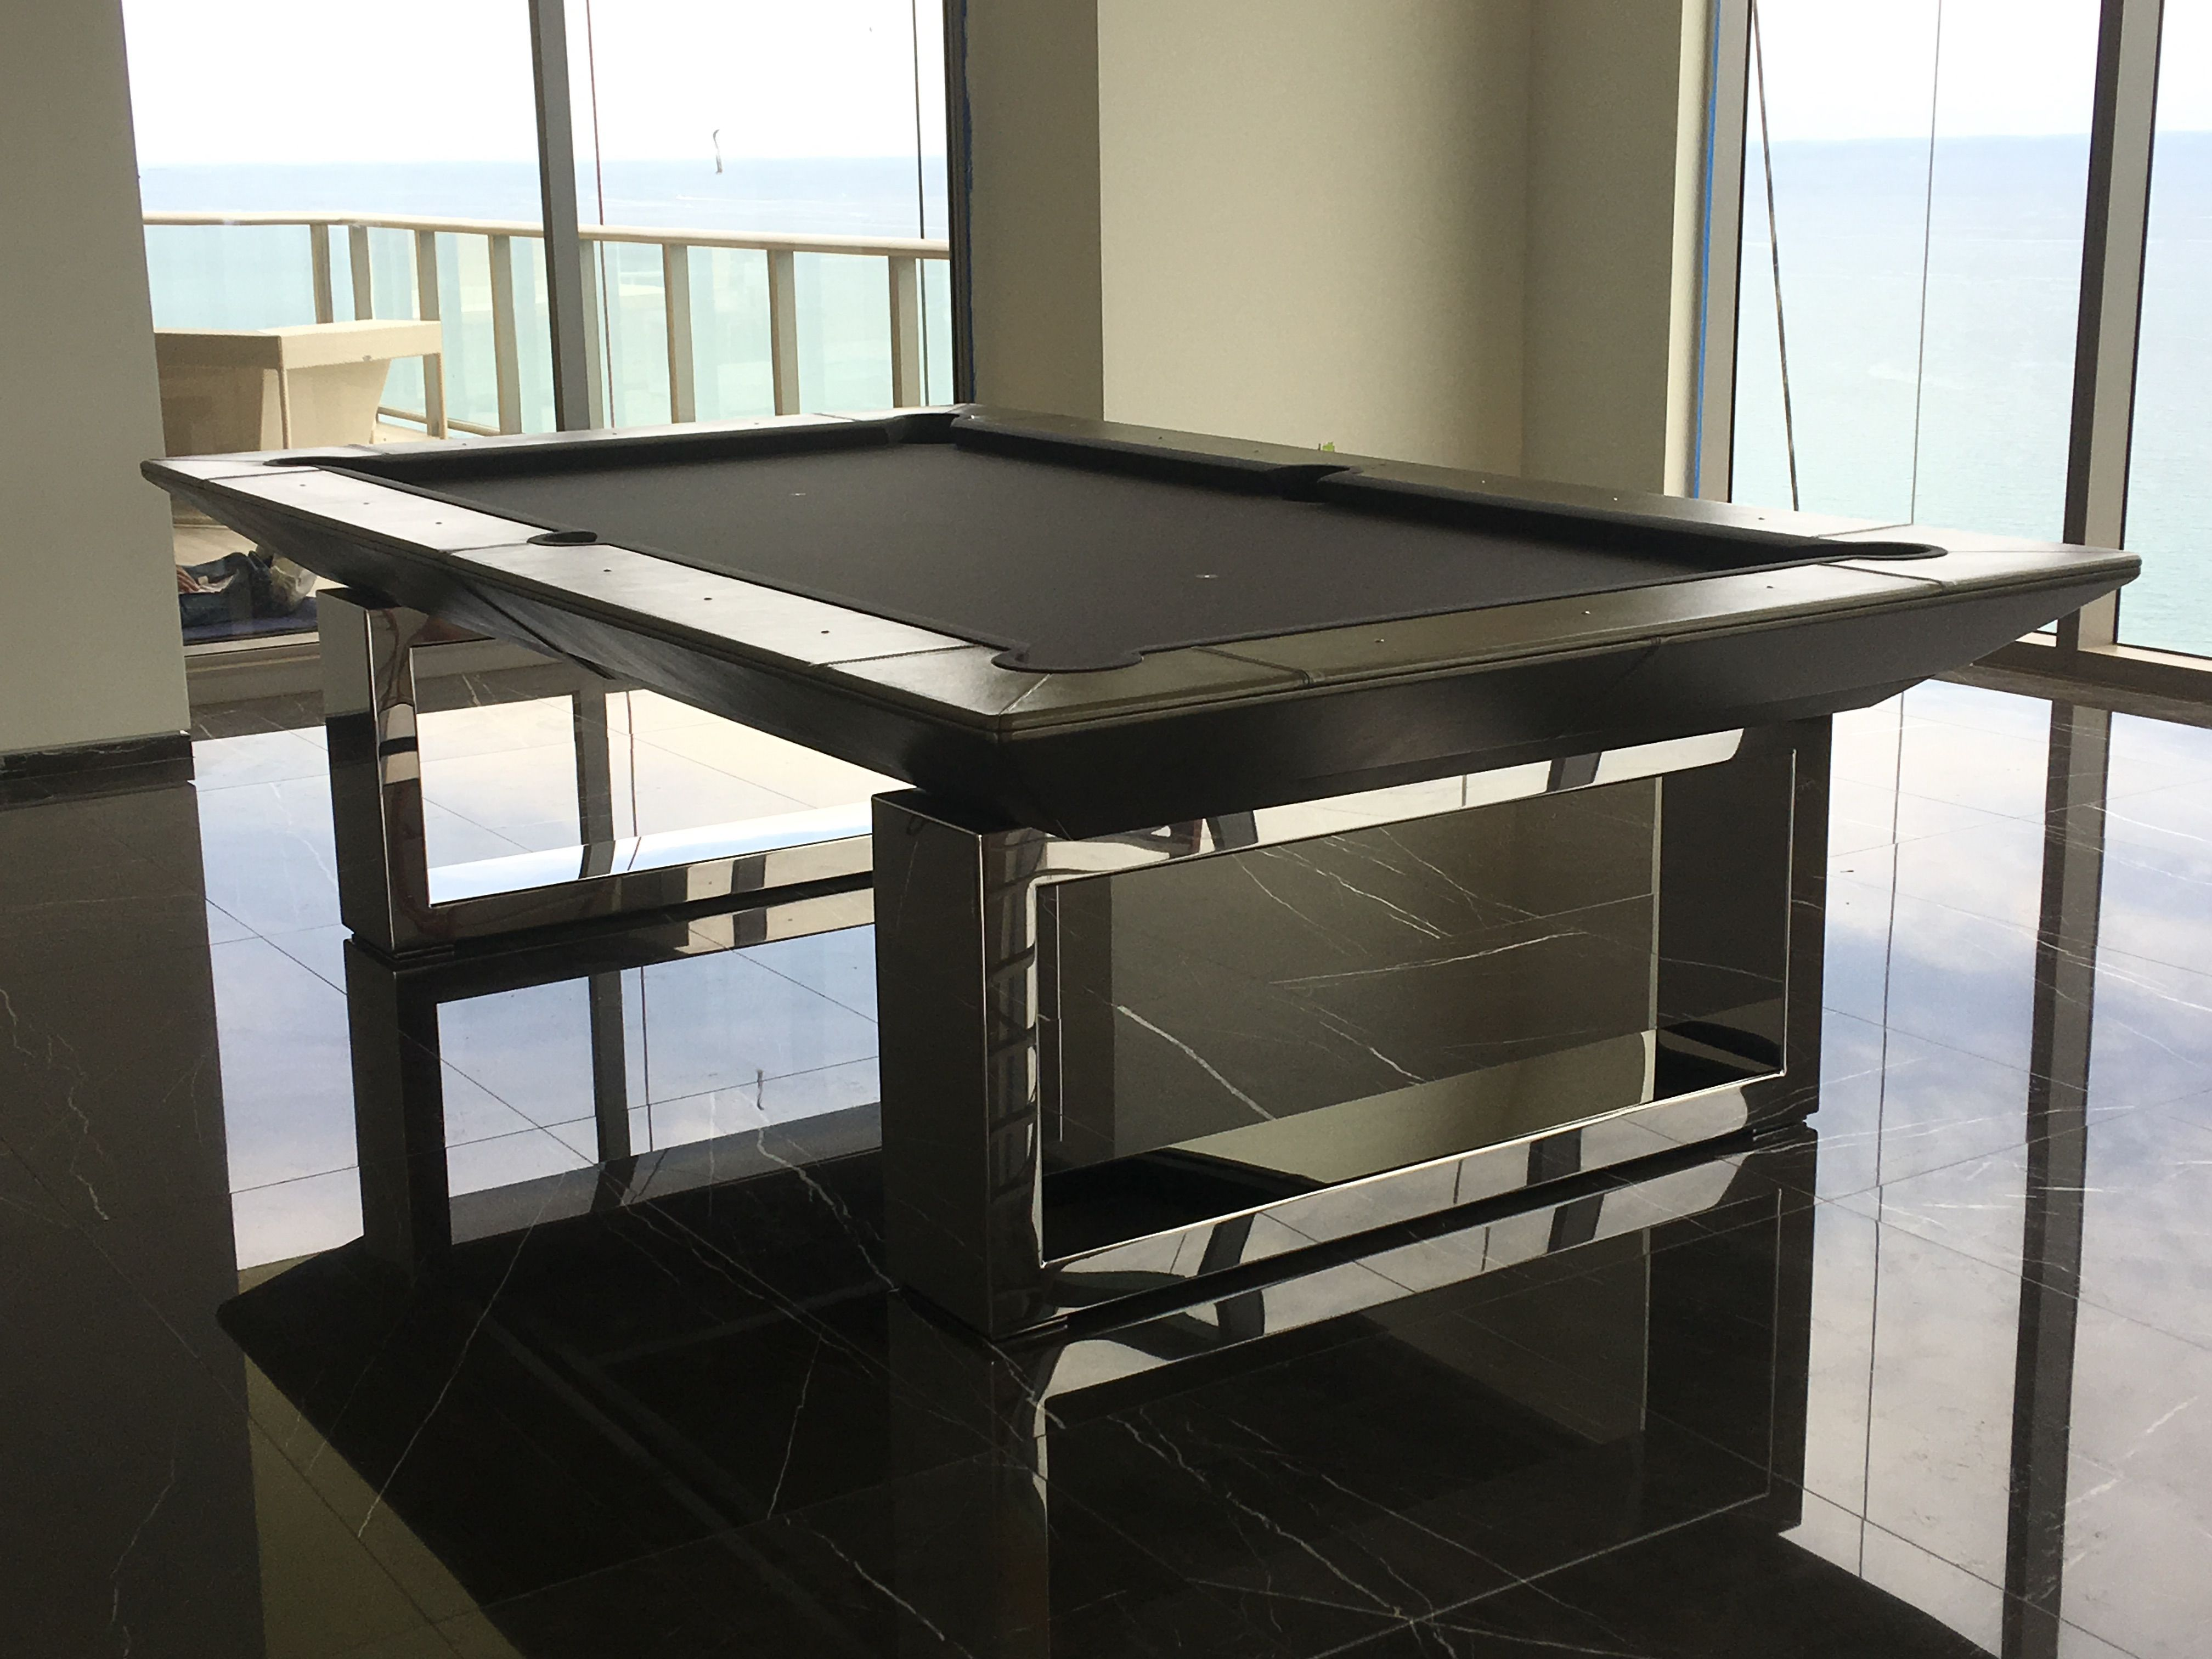 Mitchell pool tables chrome pool tables metal pool tables modern mitchell pool tables chrome pool tables metal pool tables modern pool tables geotapseo Gallery